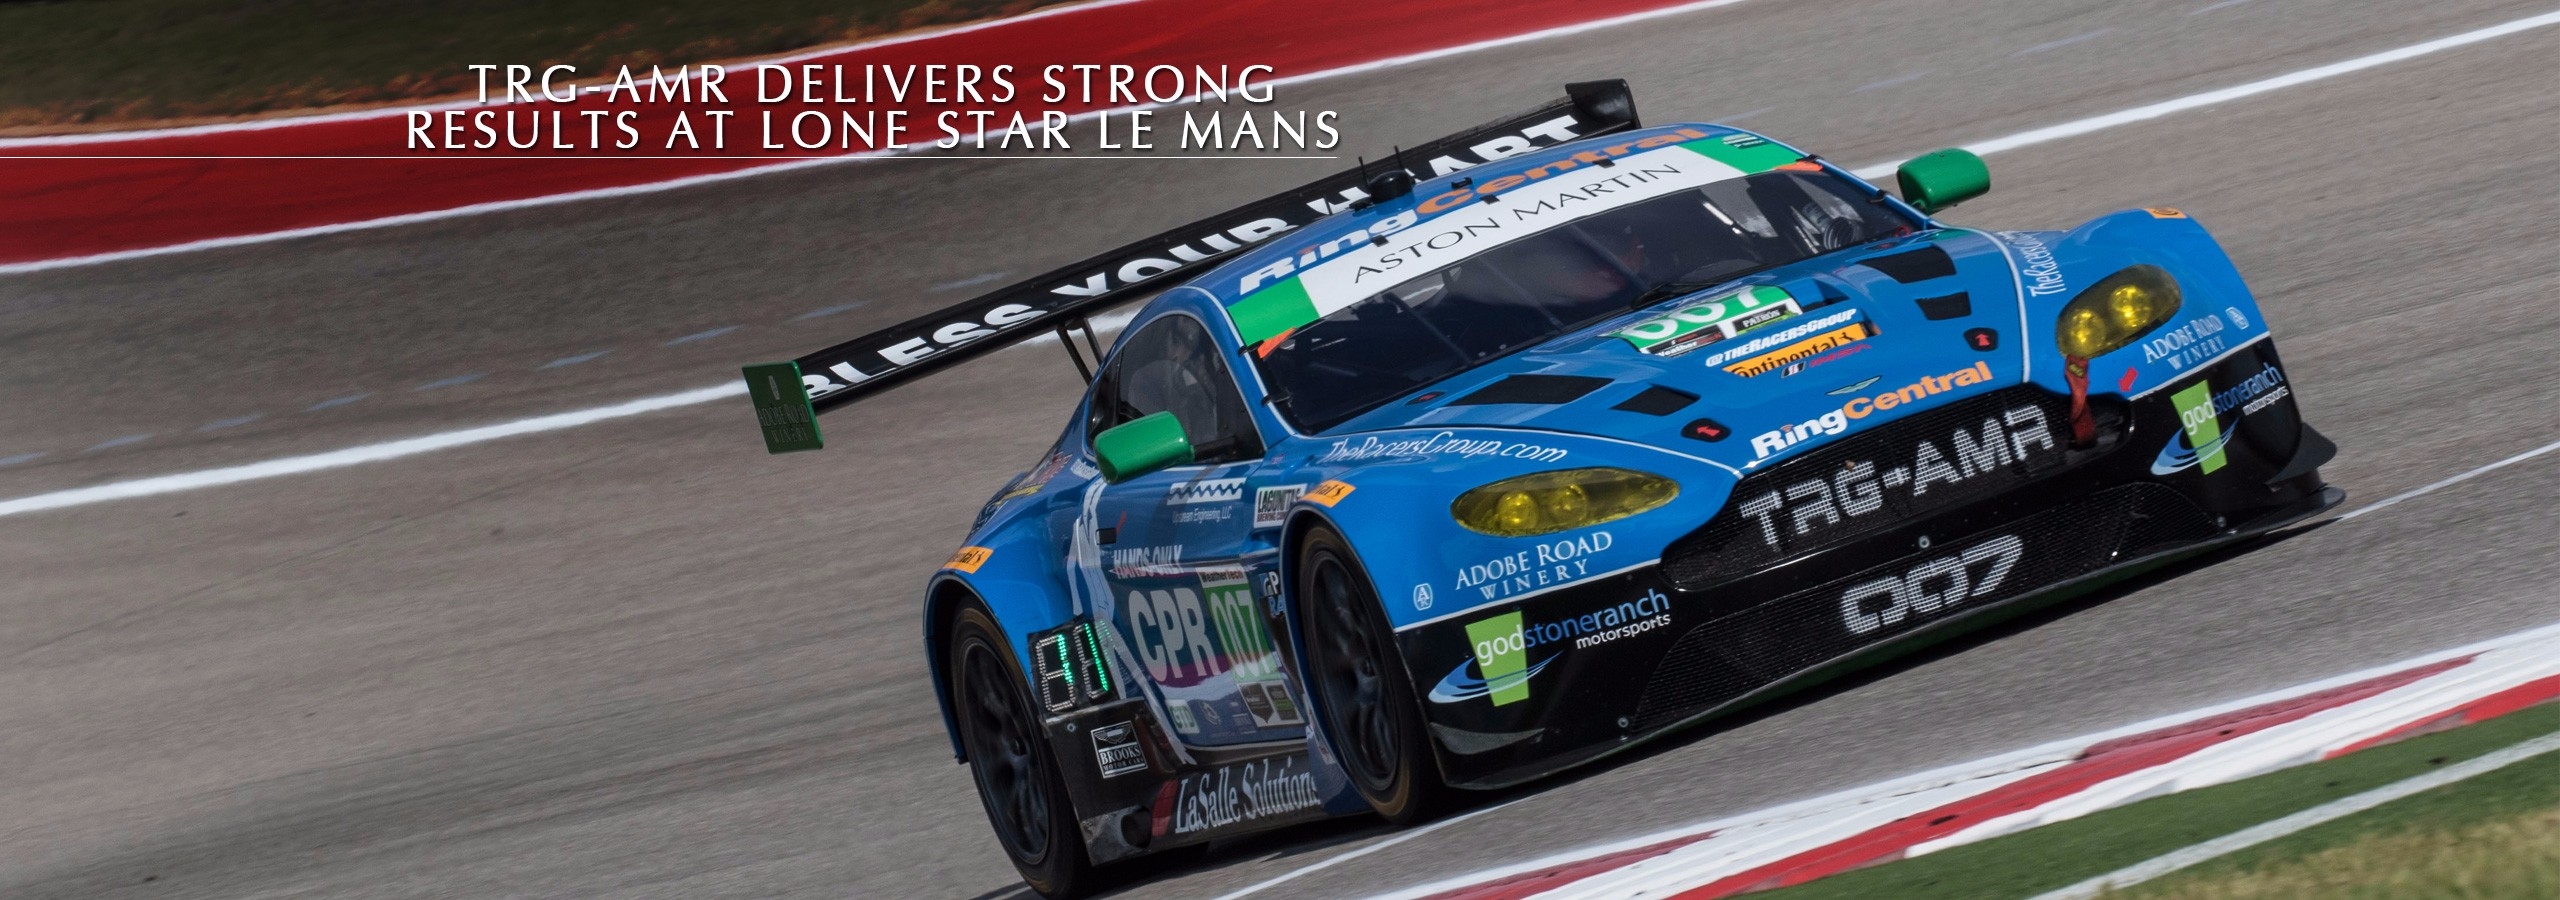 TRG-AMR Delivers Strong Results At Lone Star Le Mans